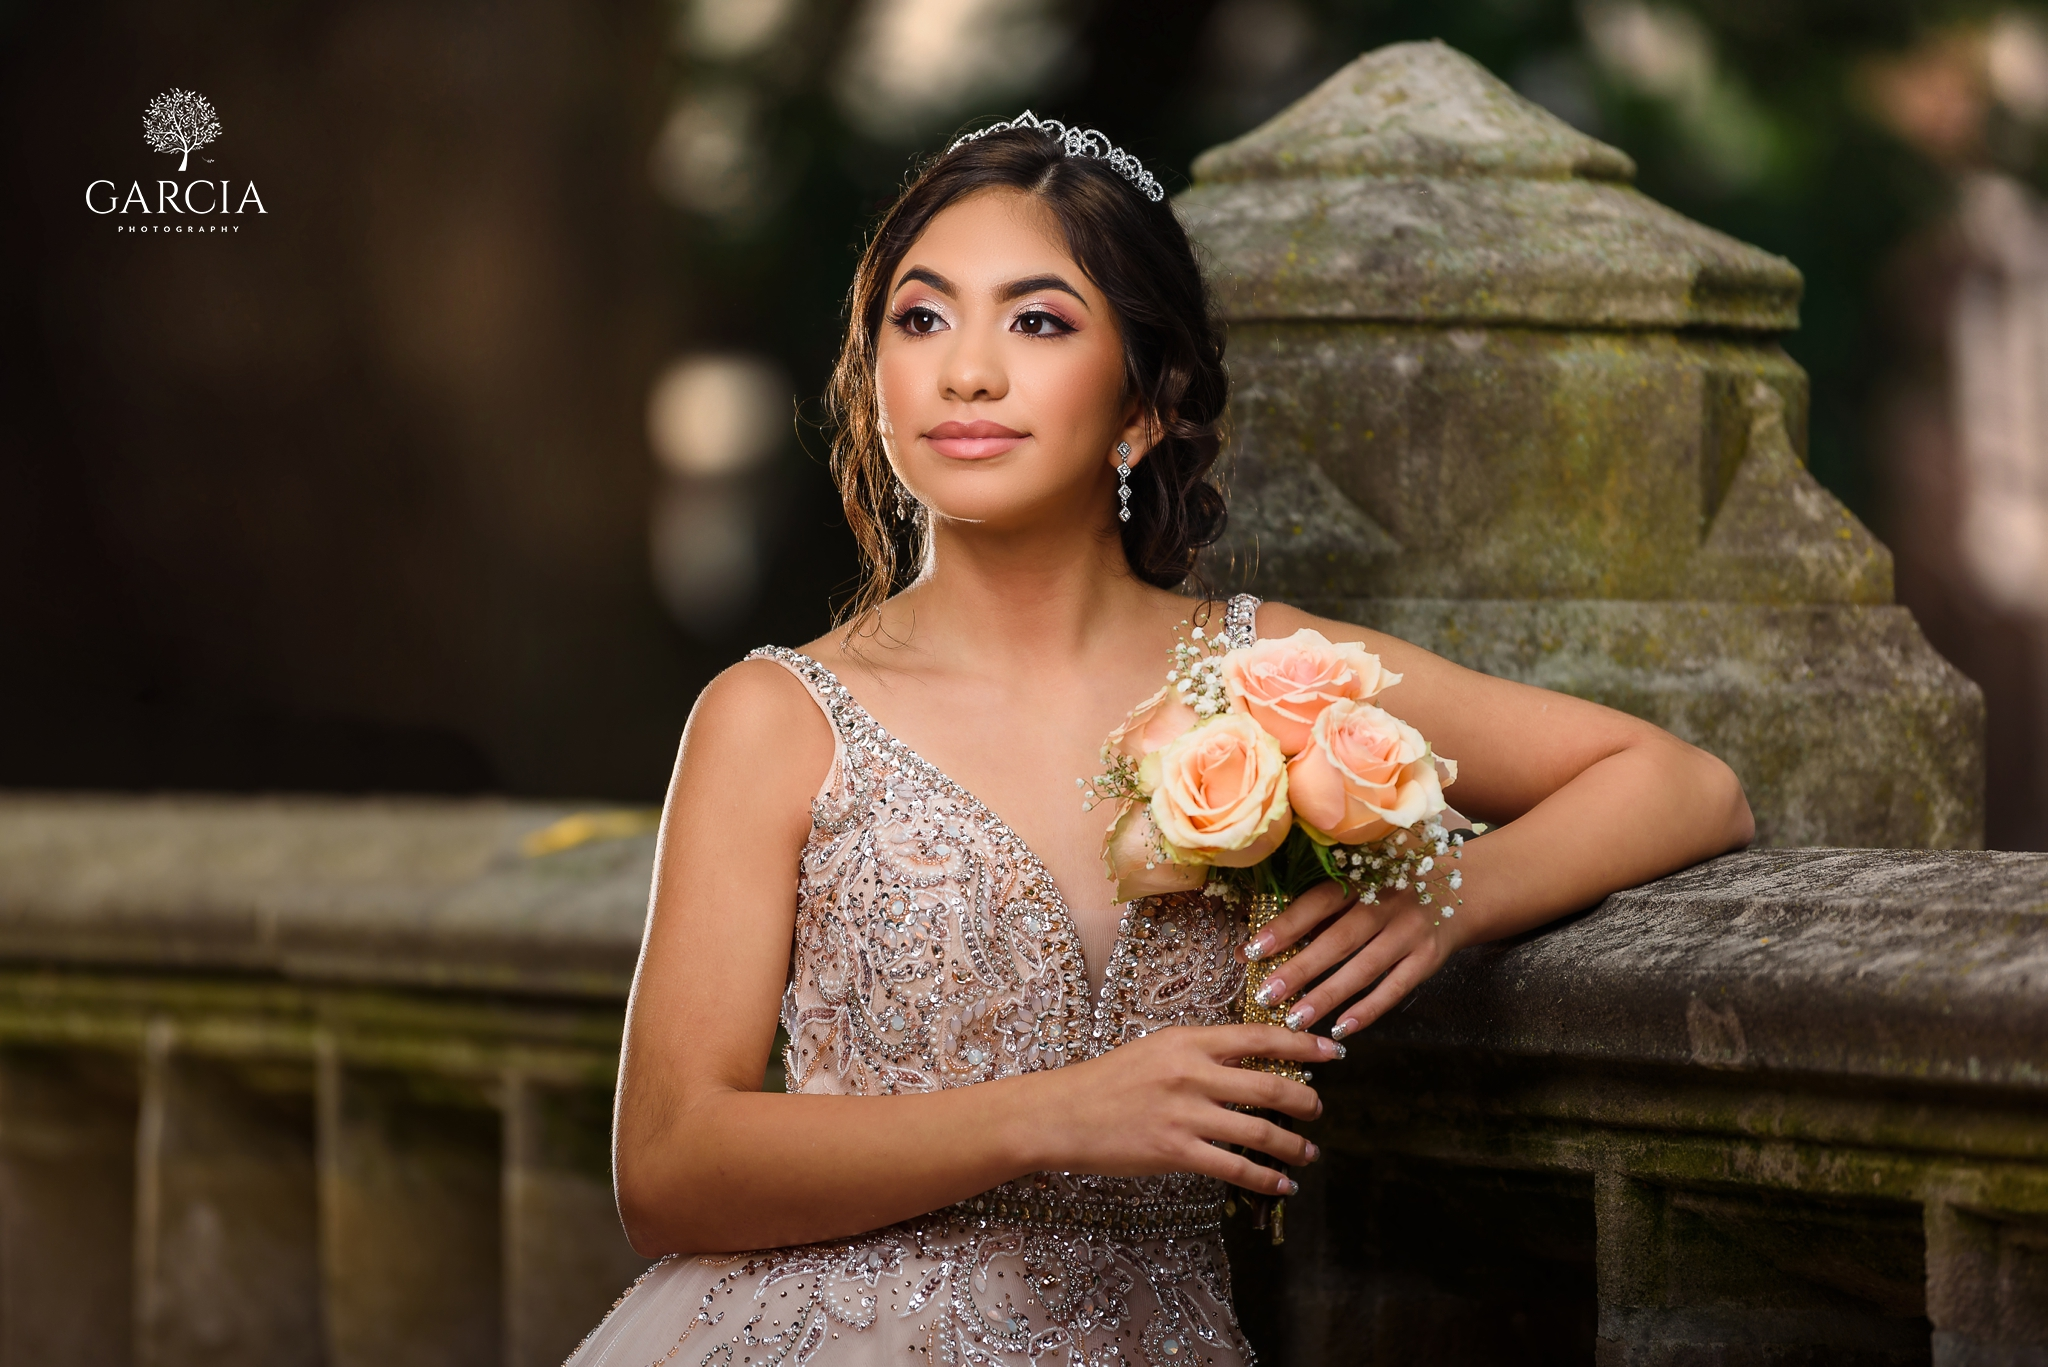 Nicole-Quince-Session-Garcia-Photography-4739.jpg